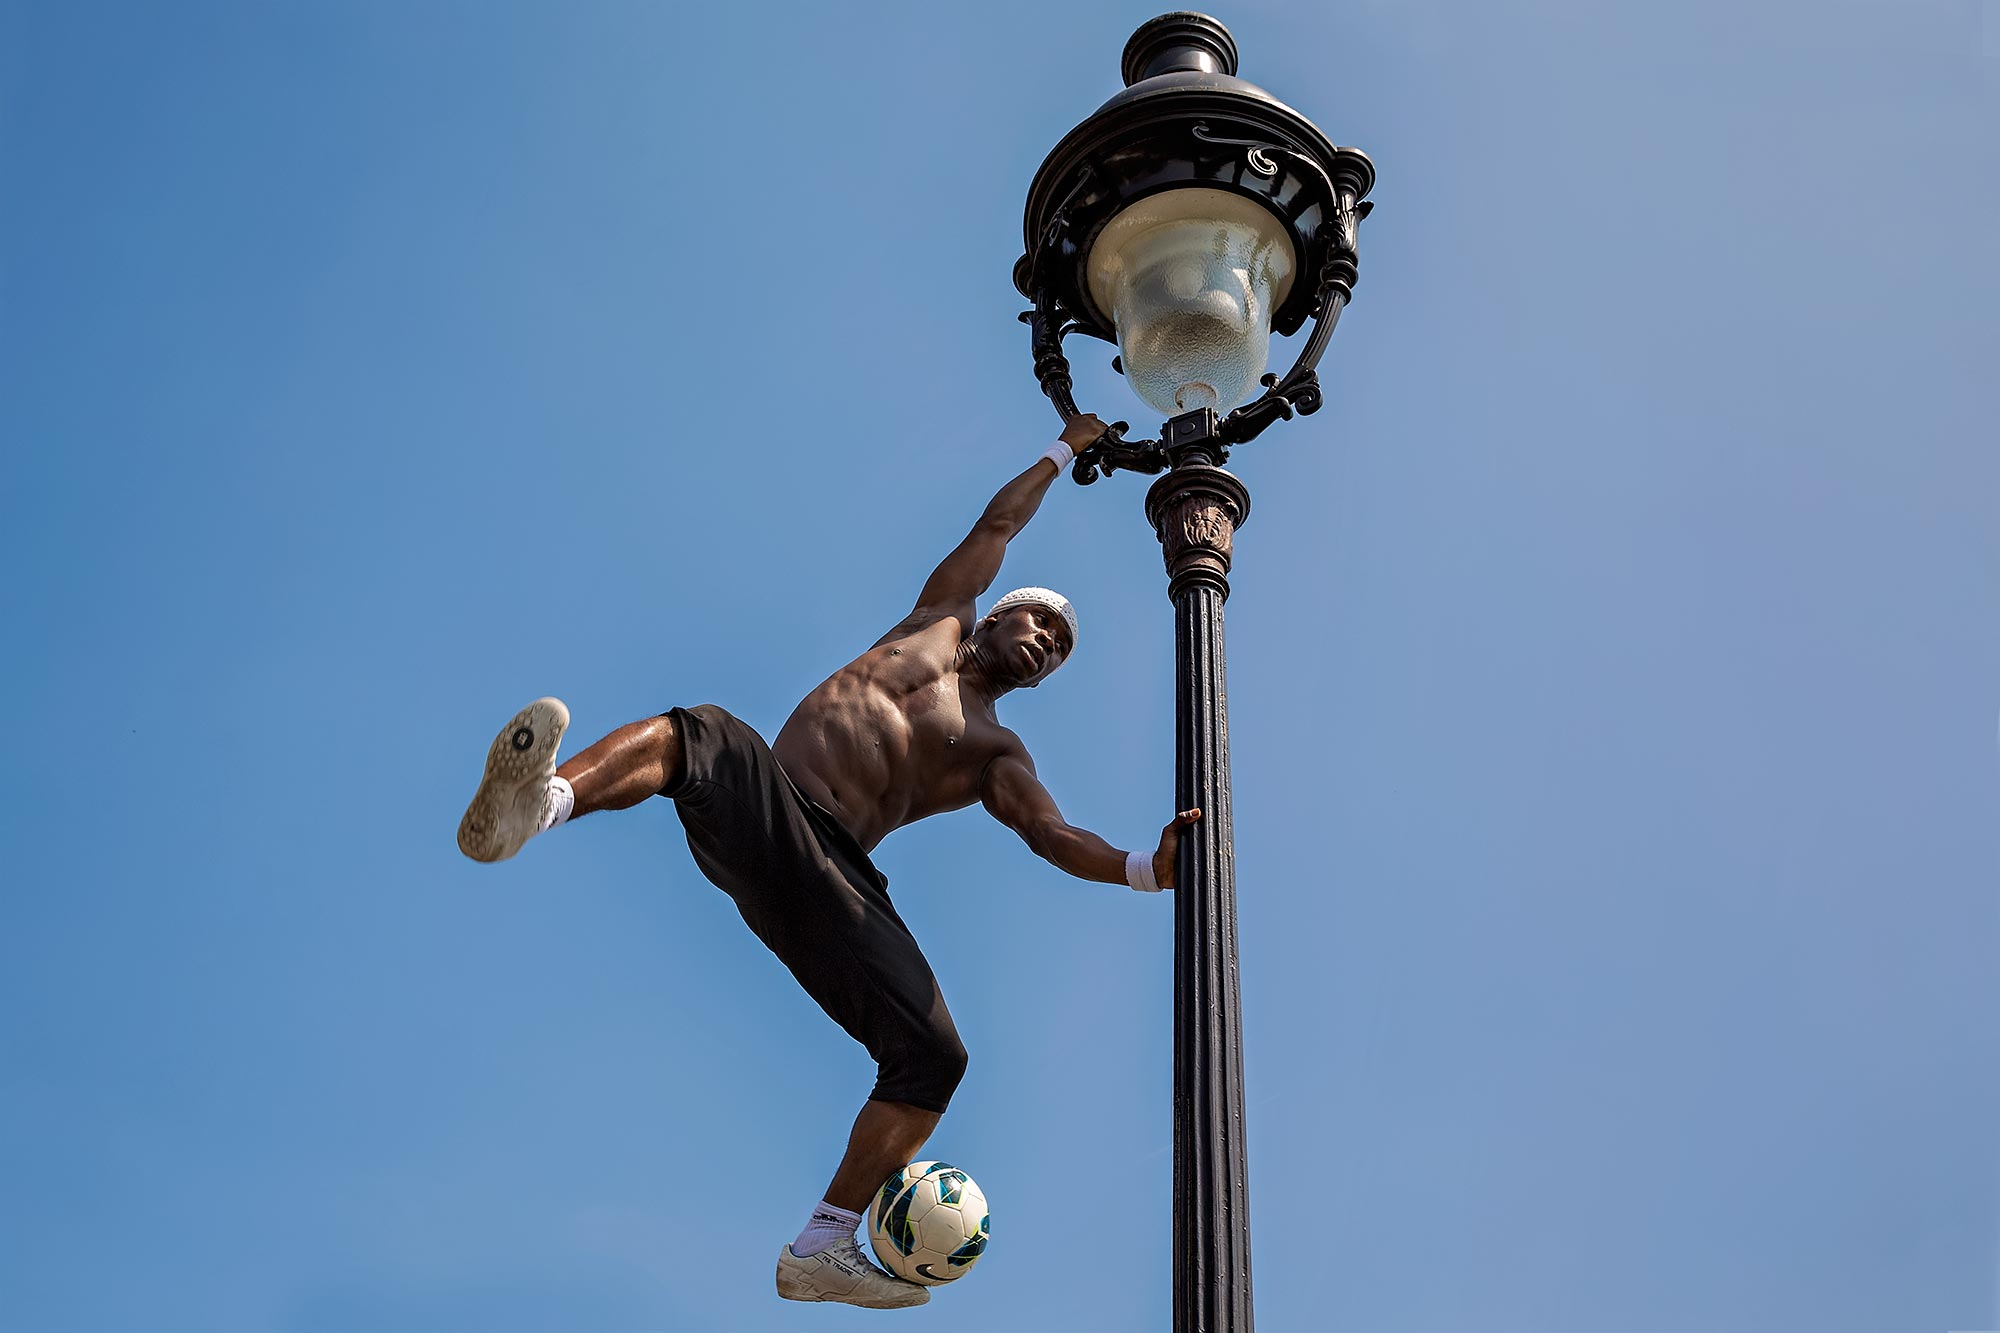 Freestyle footballer Iya Traoré in front of Sacre Coeur in Paris, France. © Ulli Maier & Nisa Maier